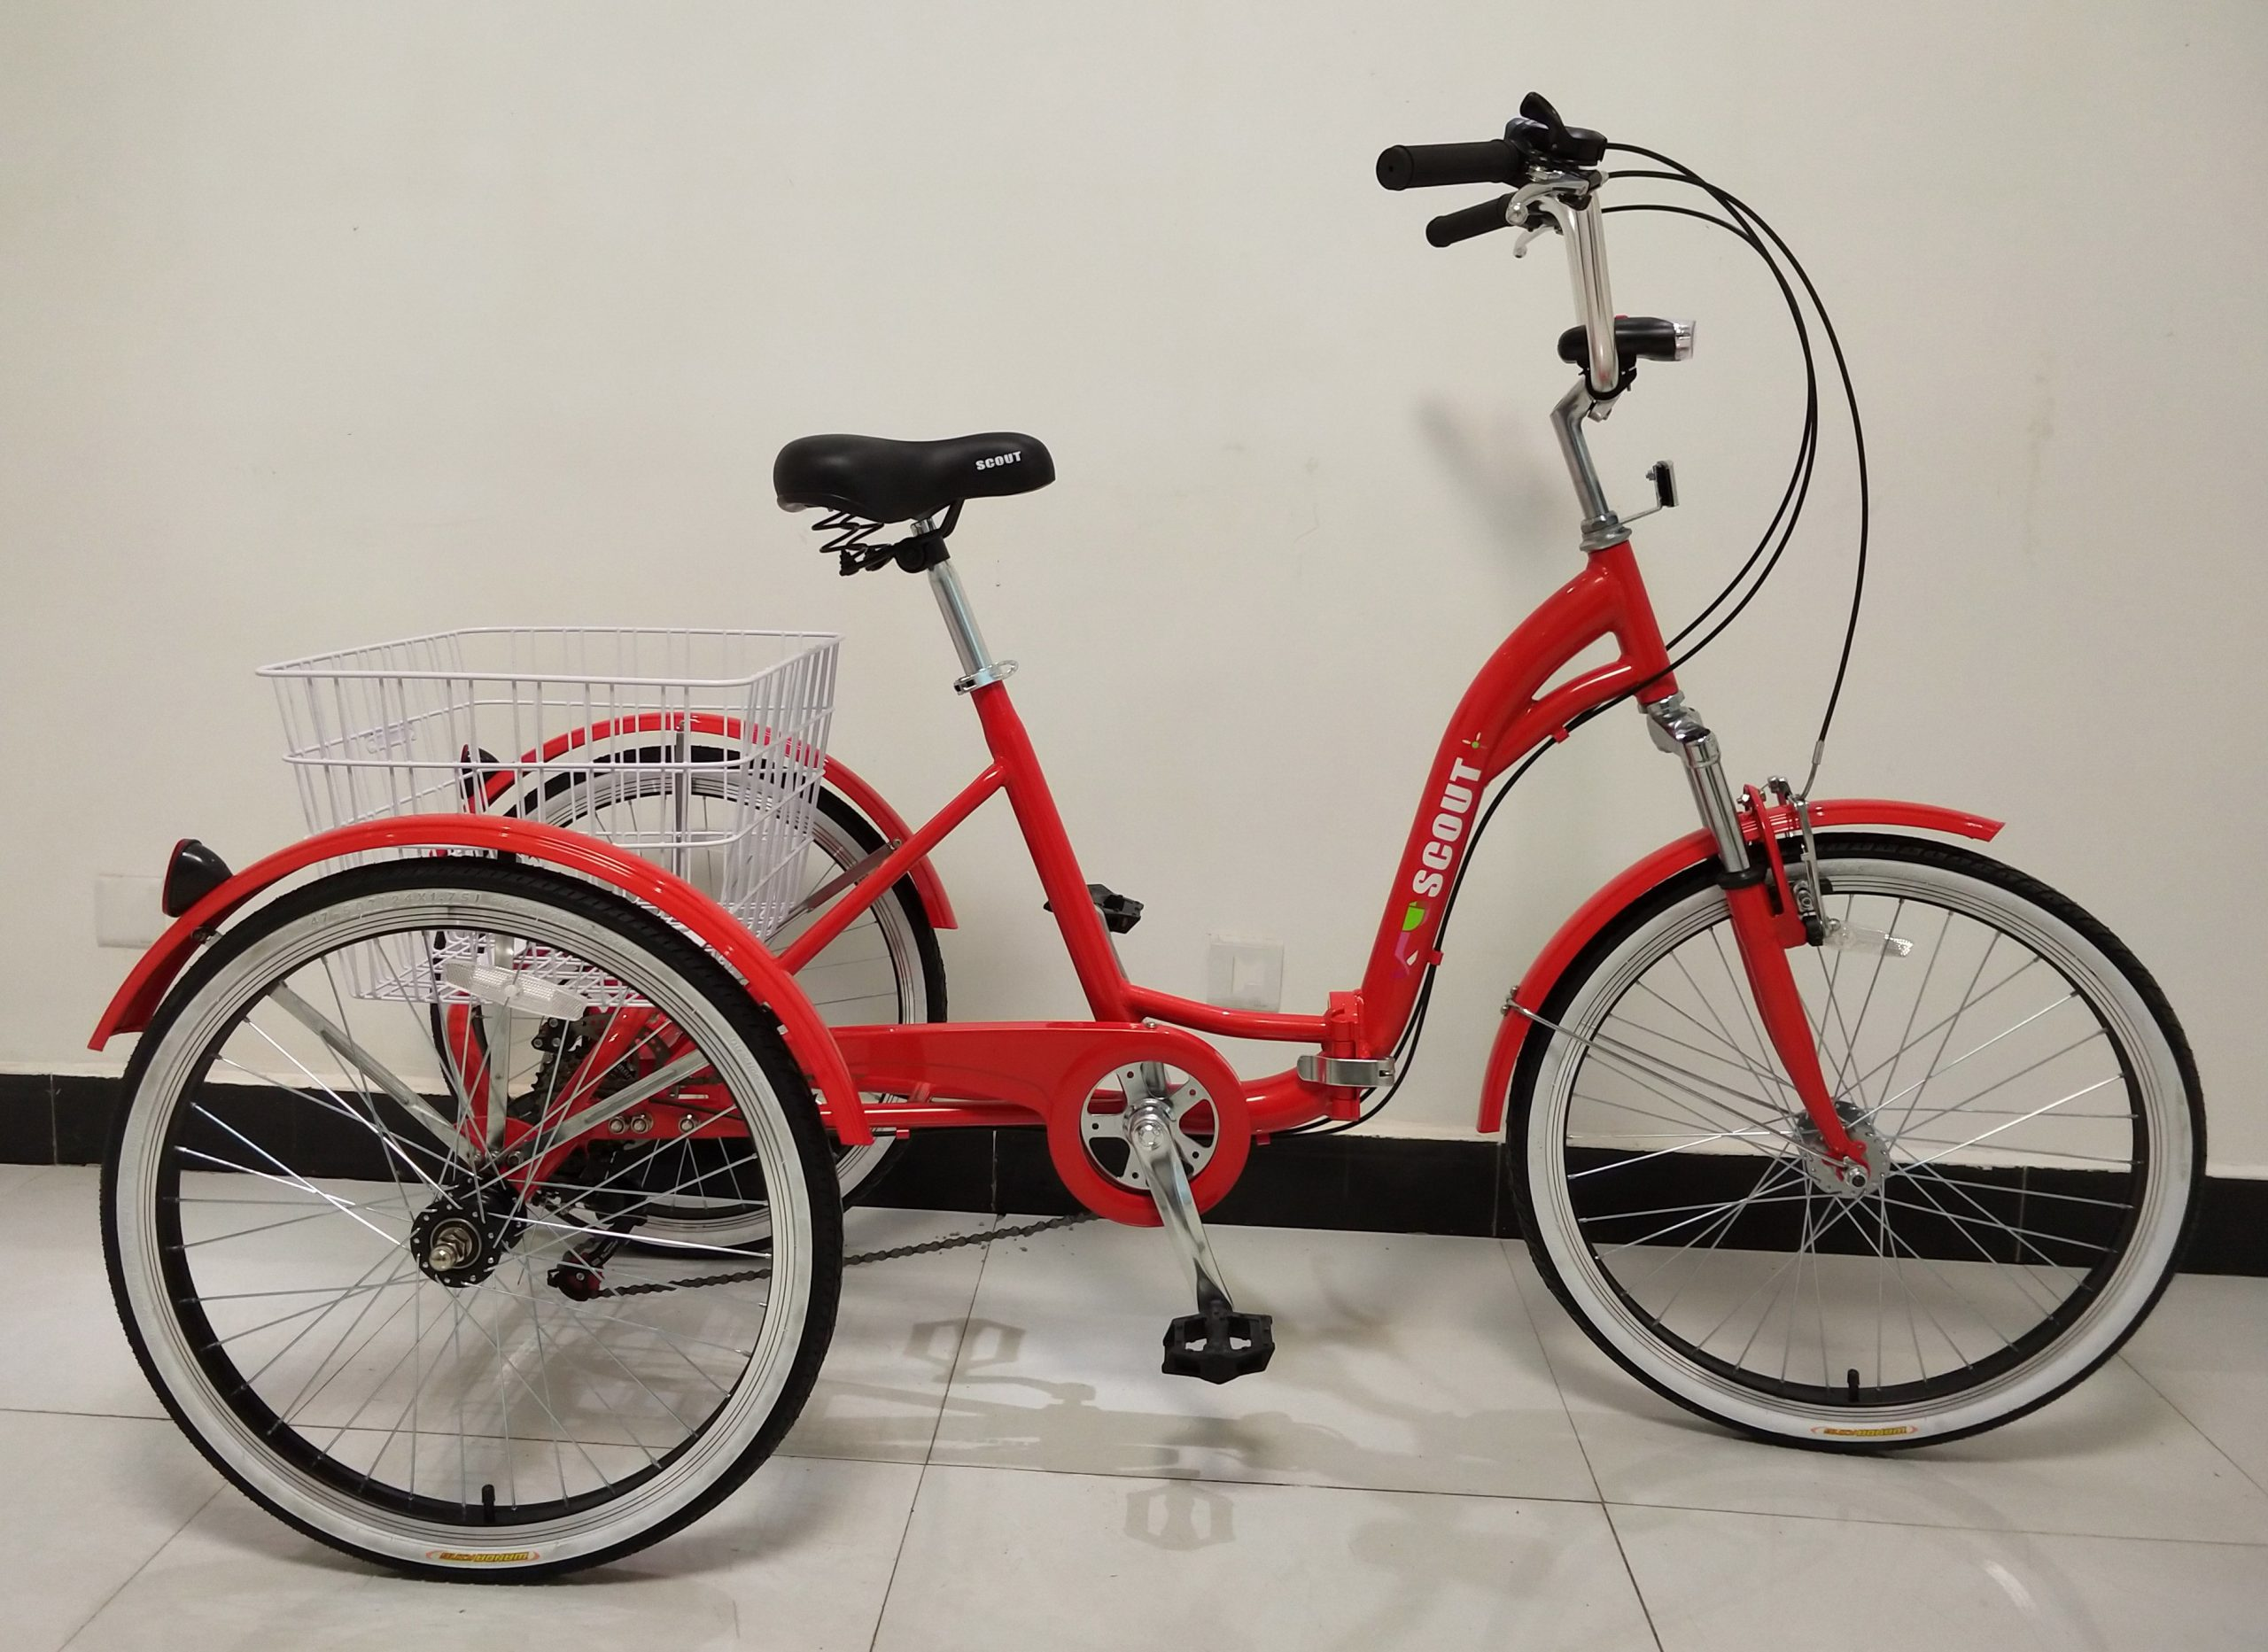 BuyTricycle offers a Unique Range of Adult Tricycles in the United Kingdom 1